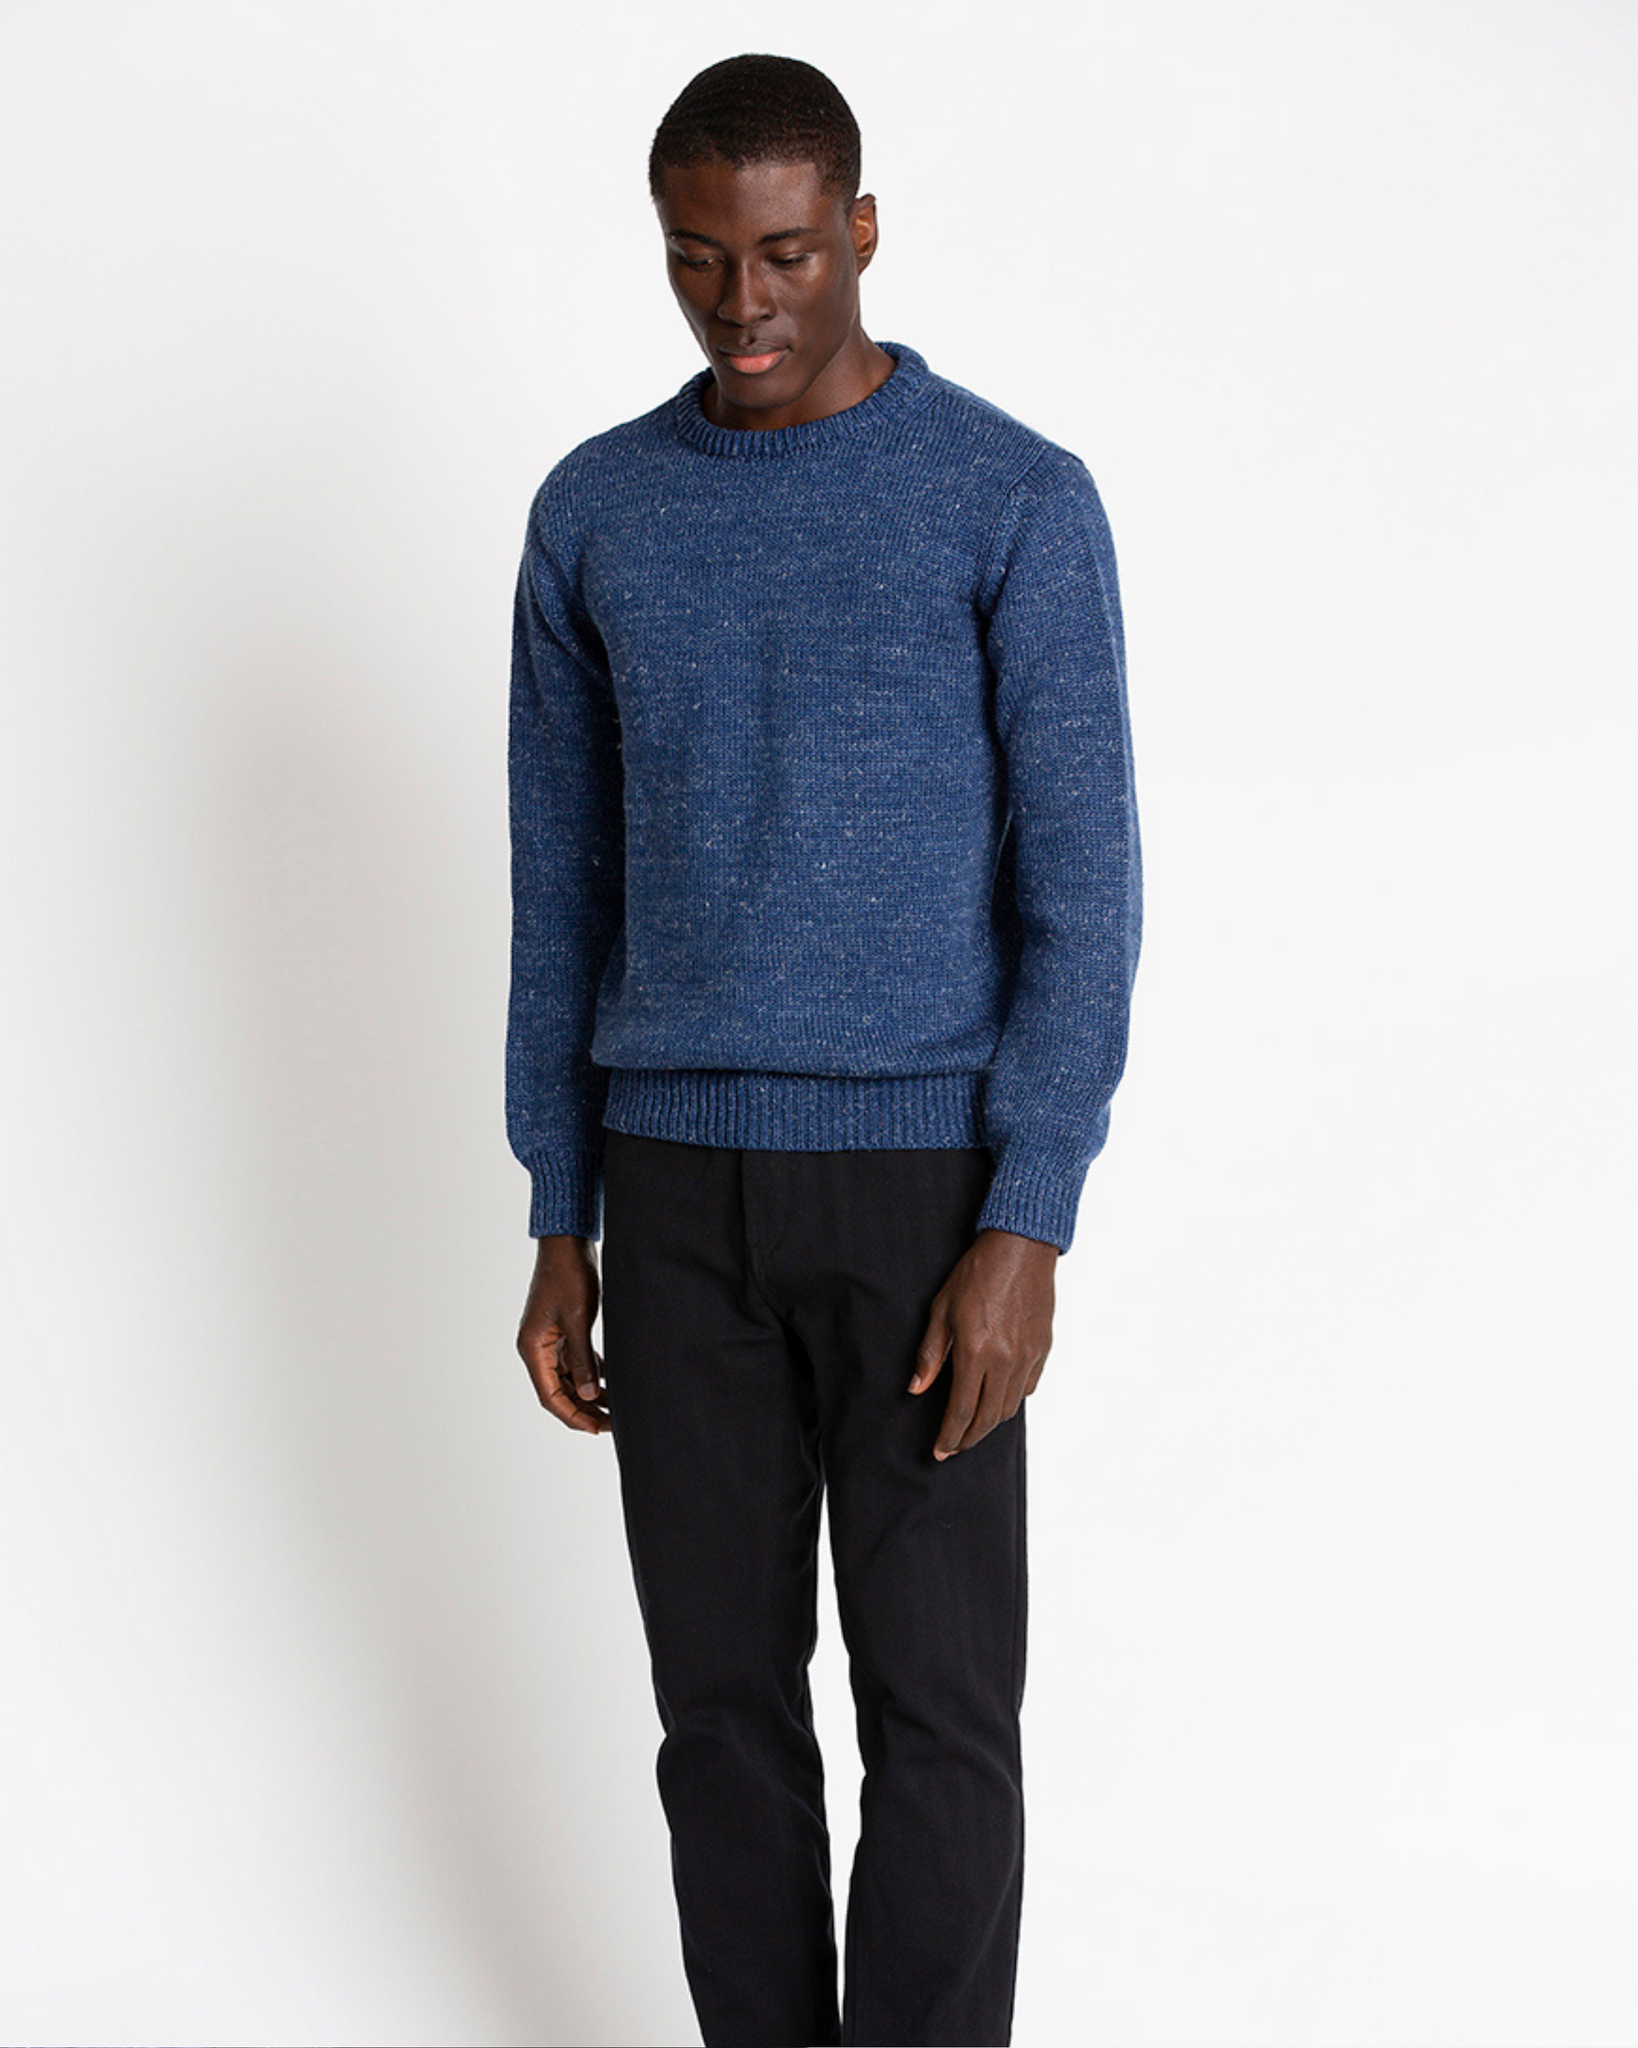 The 1kg Wool & Linen Sweater in Estate Blue